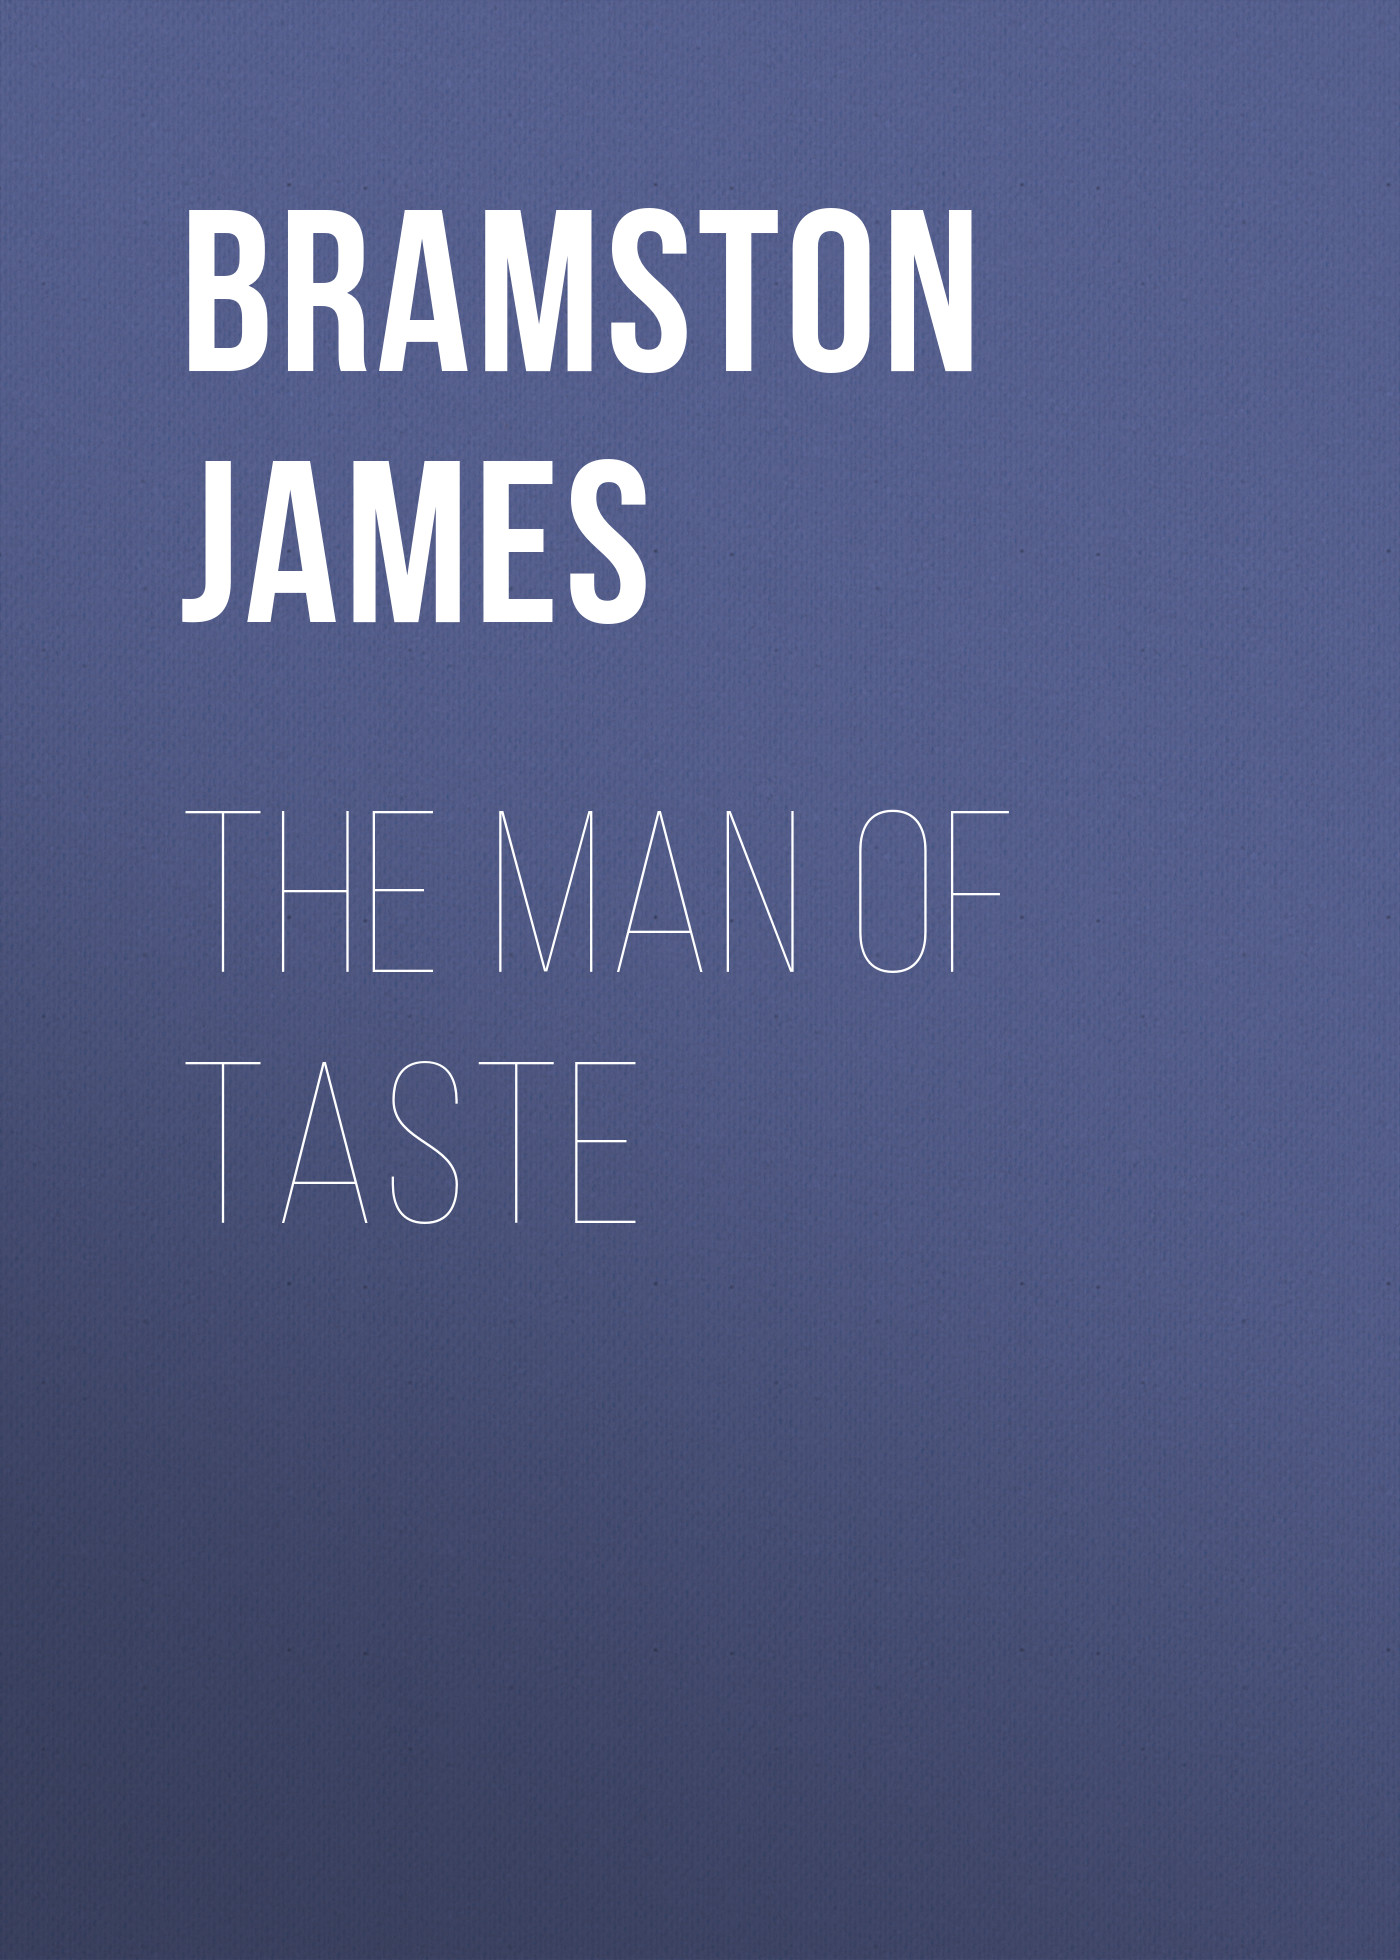 Bramston James The Man of Taste